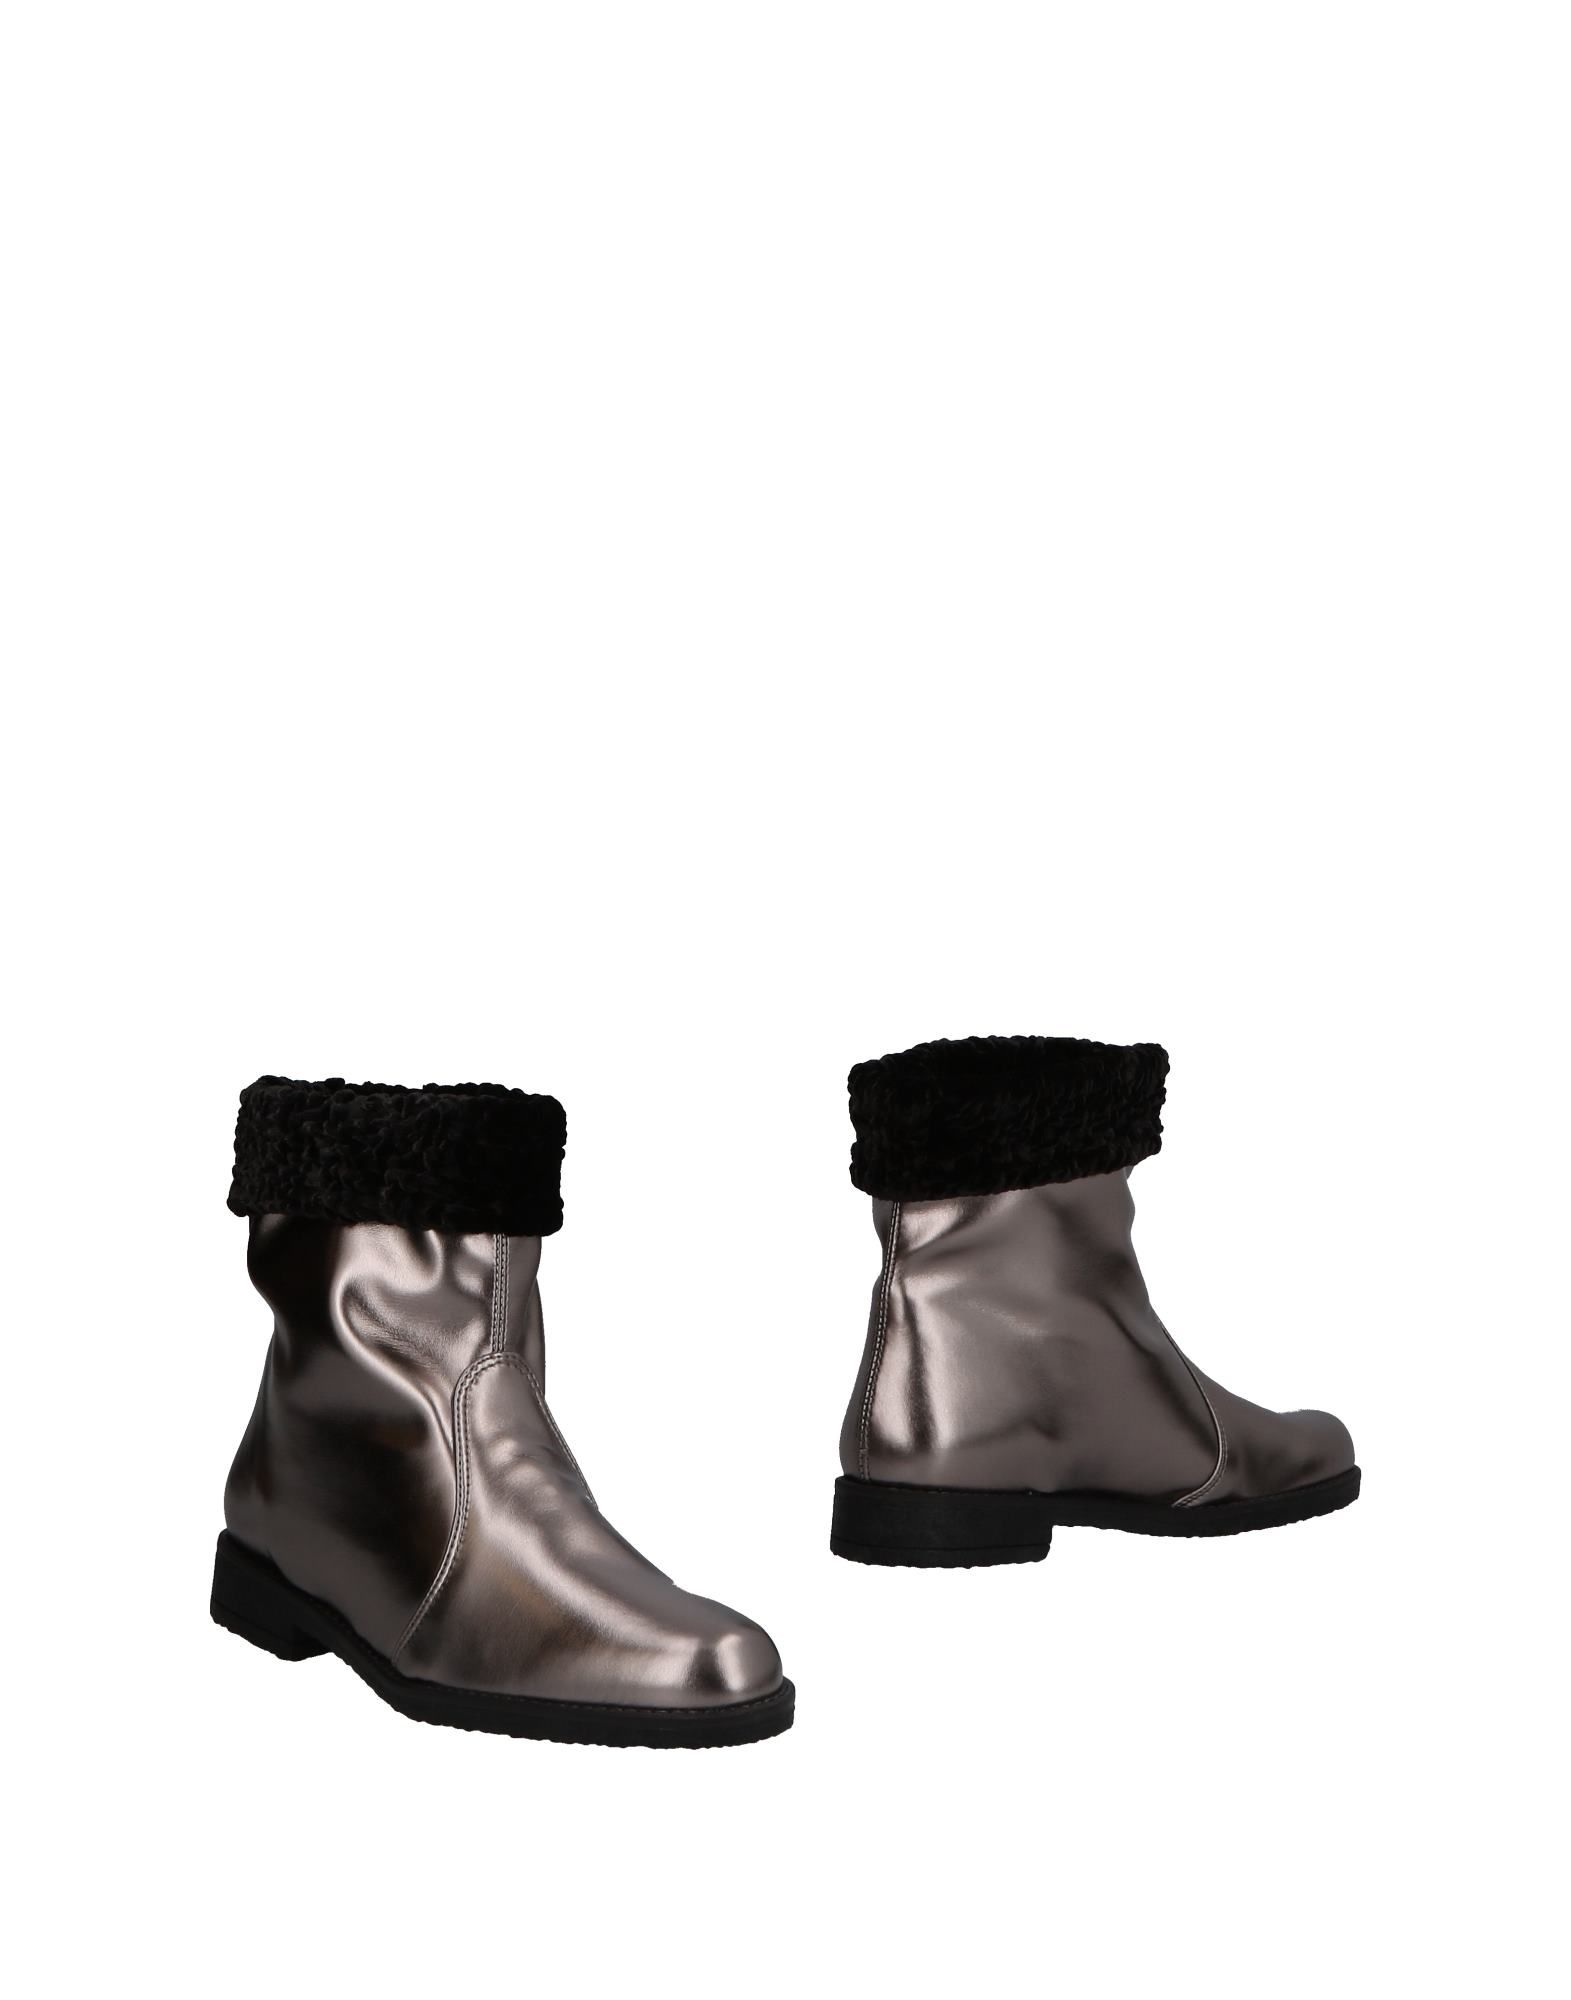 Nr Rapisardi Ankle Boot - Women Nr on Rapisardi Ankle Boots online on Nr  Australia - 11504961QK 7bb4cd